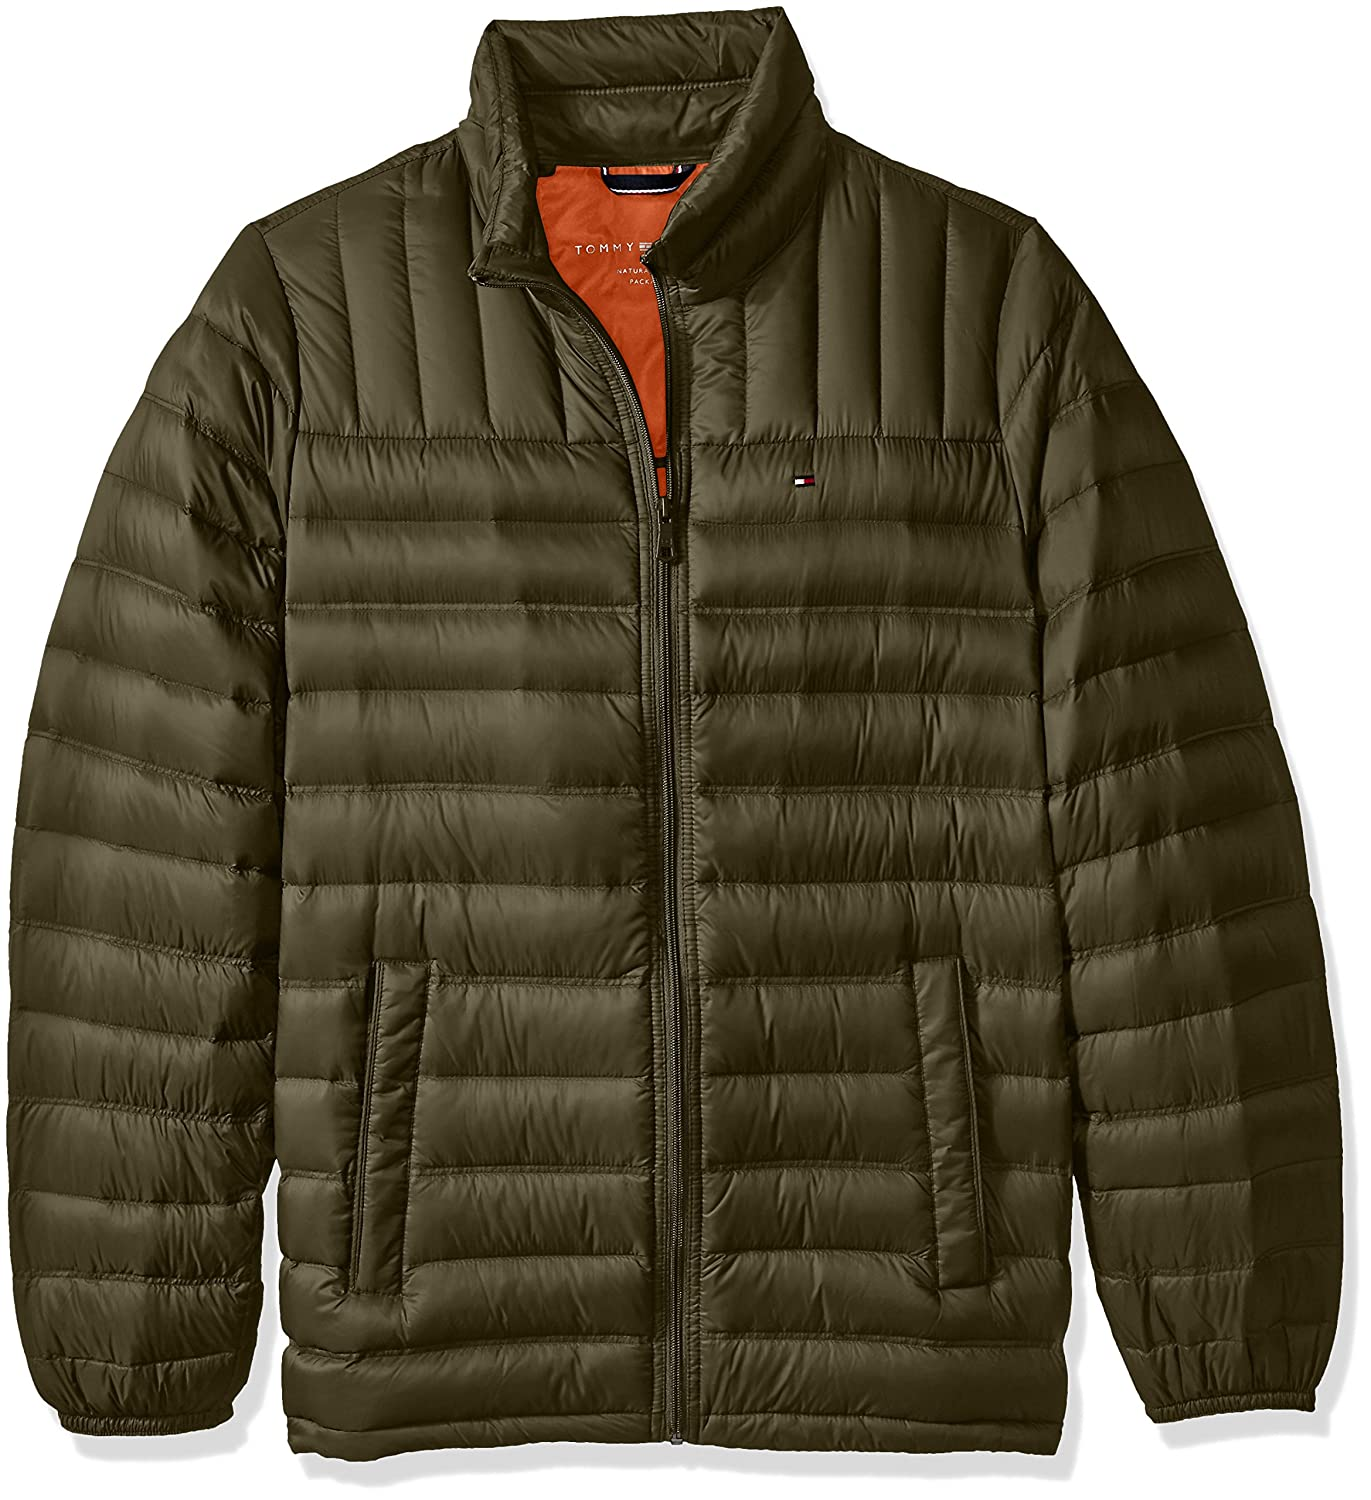 Tommy Hilfiger Men's Tall Size Packable Down Jacket 155TN231